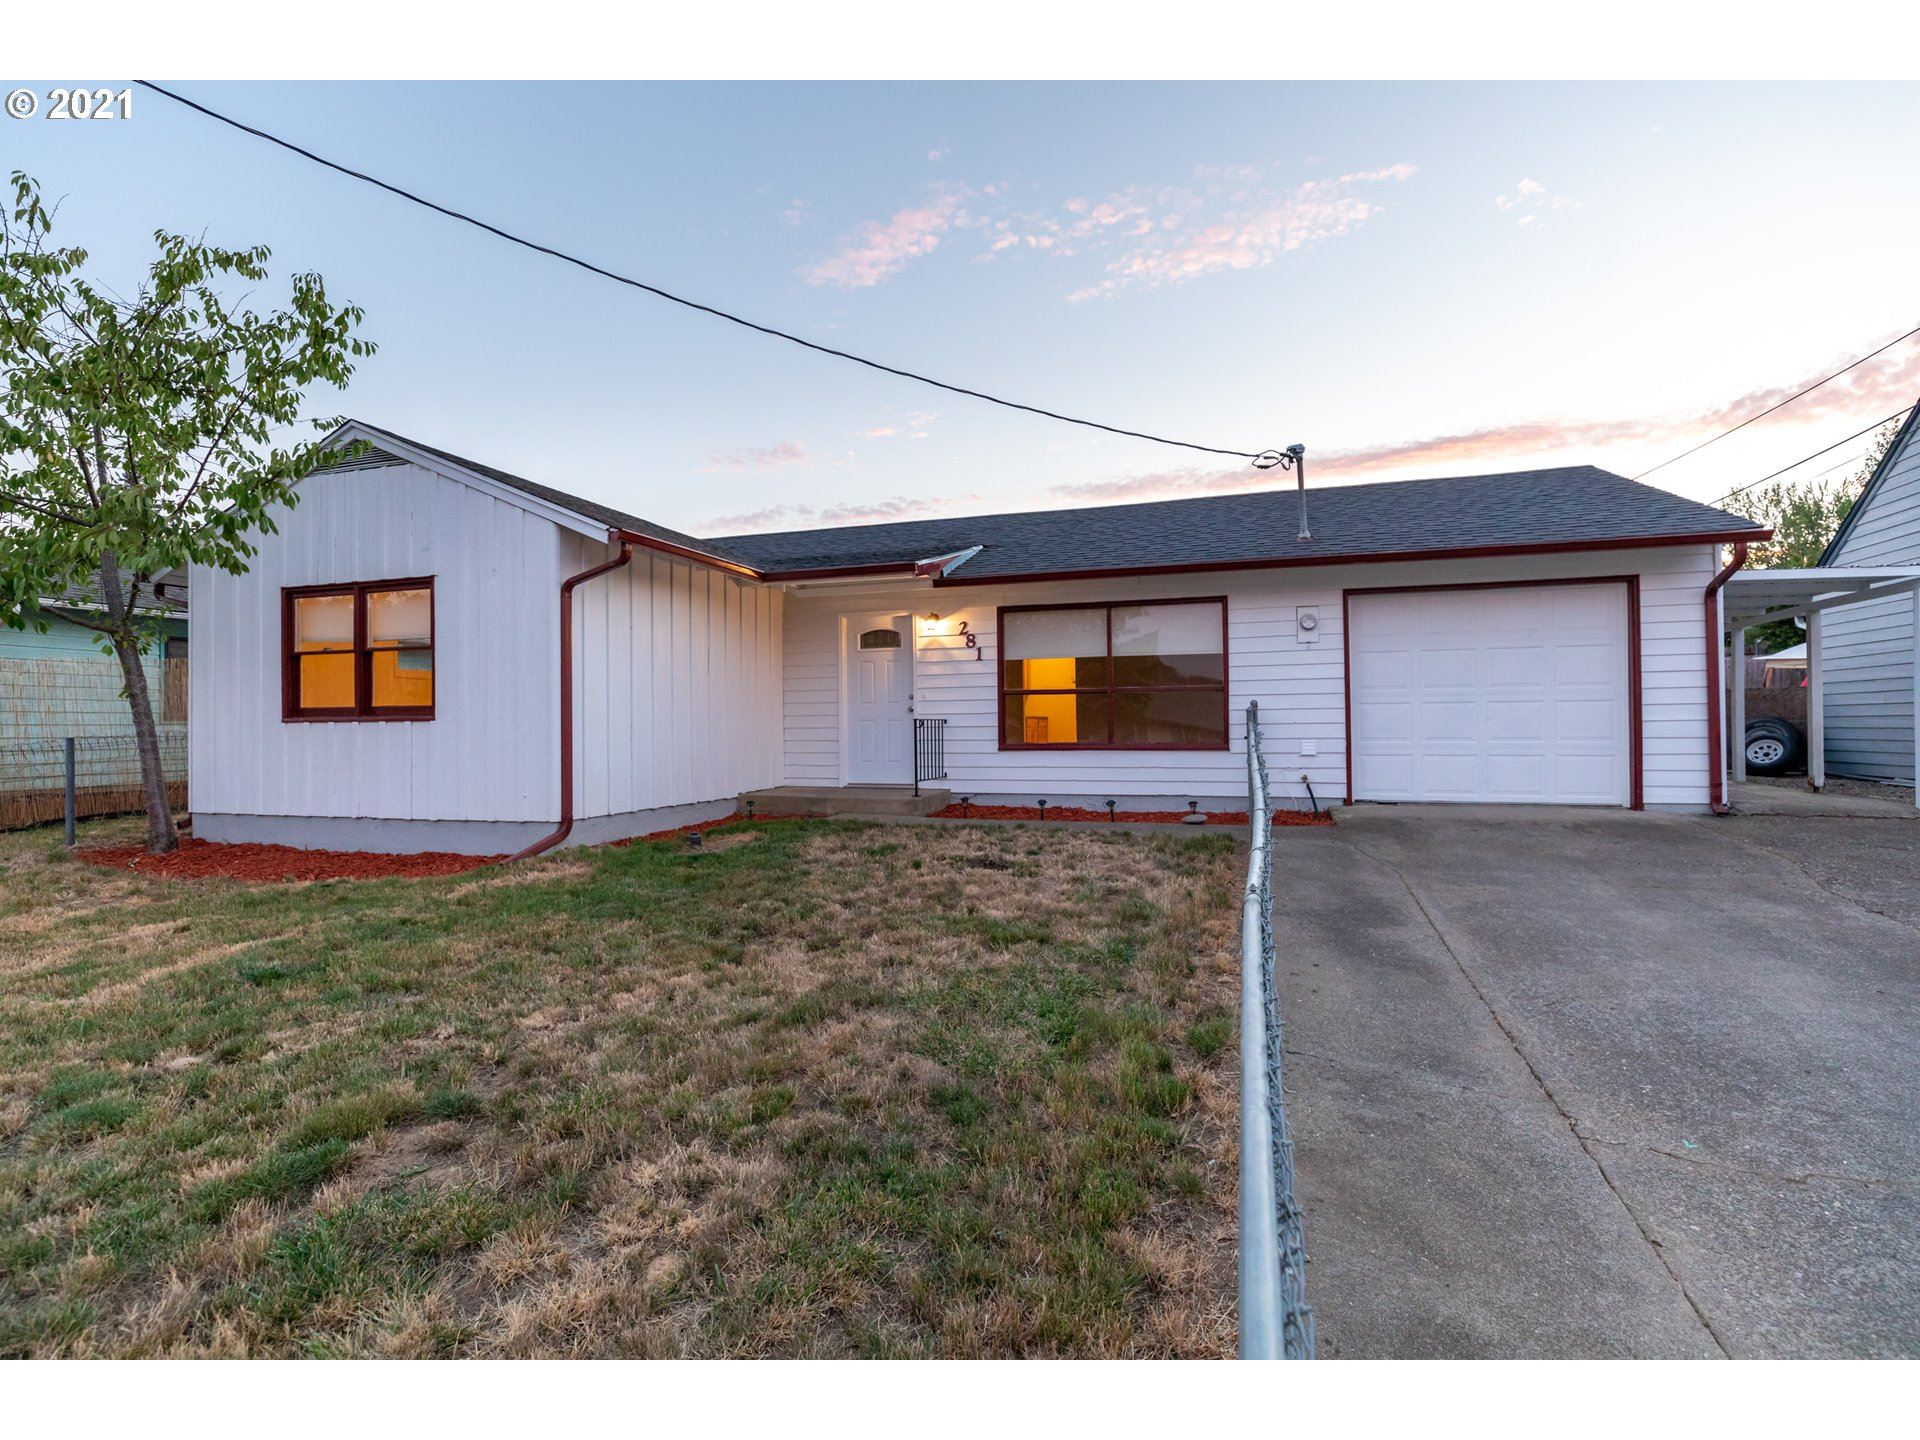 281 FORD ST, Winston, OR 97496 - MLS#: 21177869